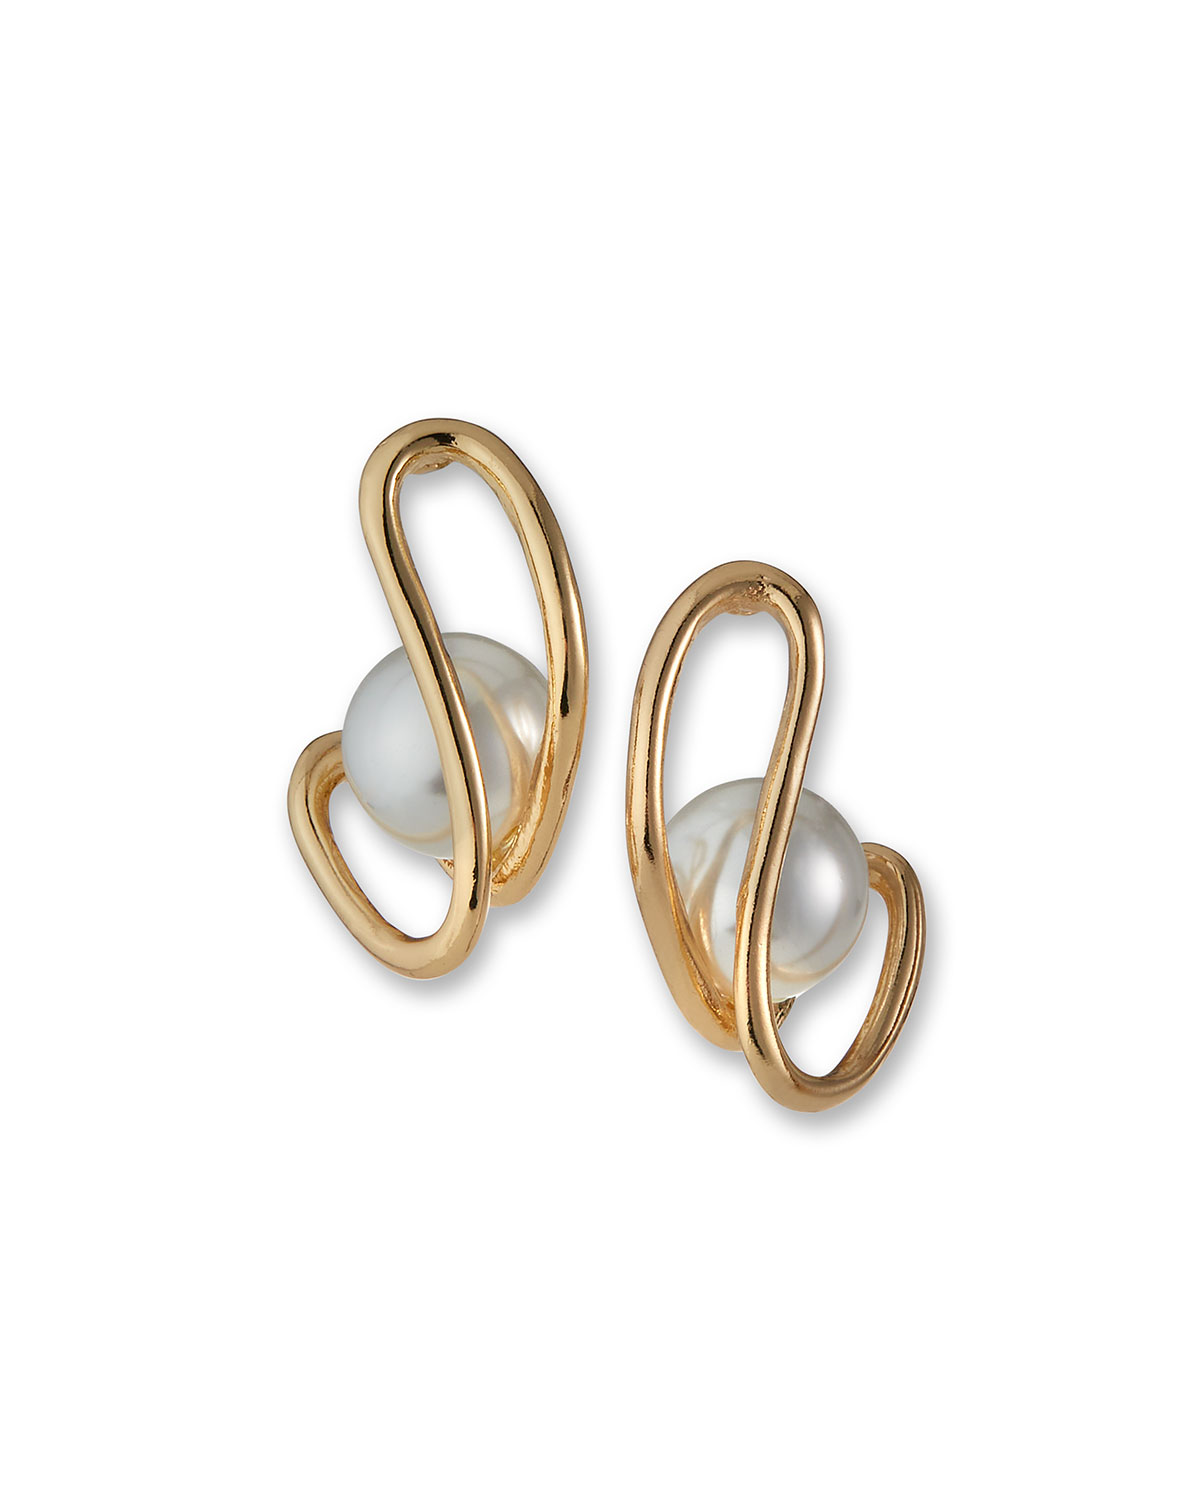 Open Double-Bar Earrings with Simulated Pearls